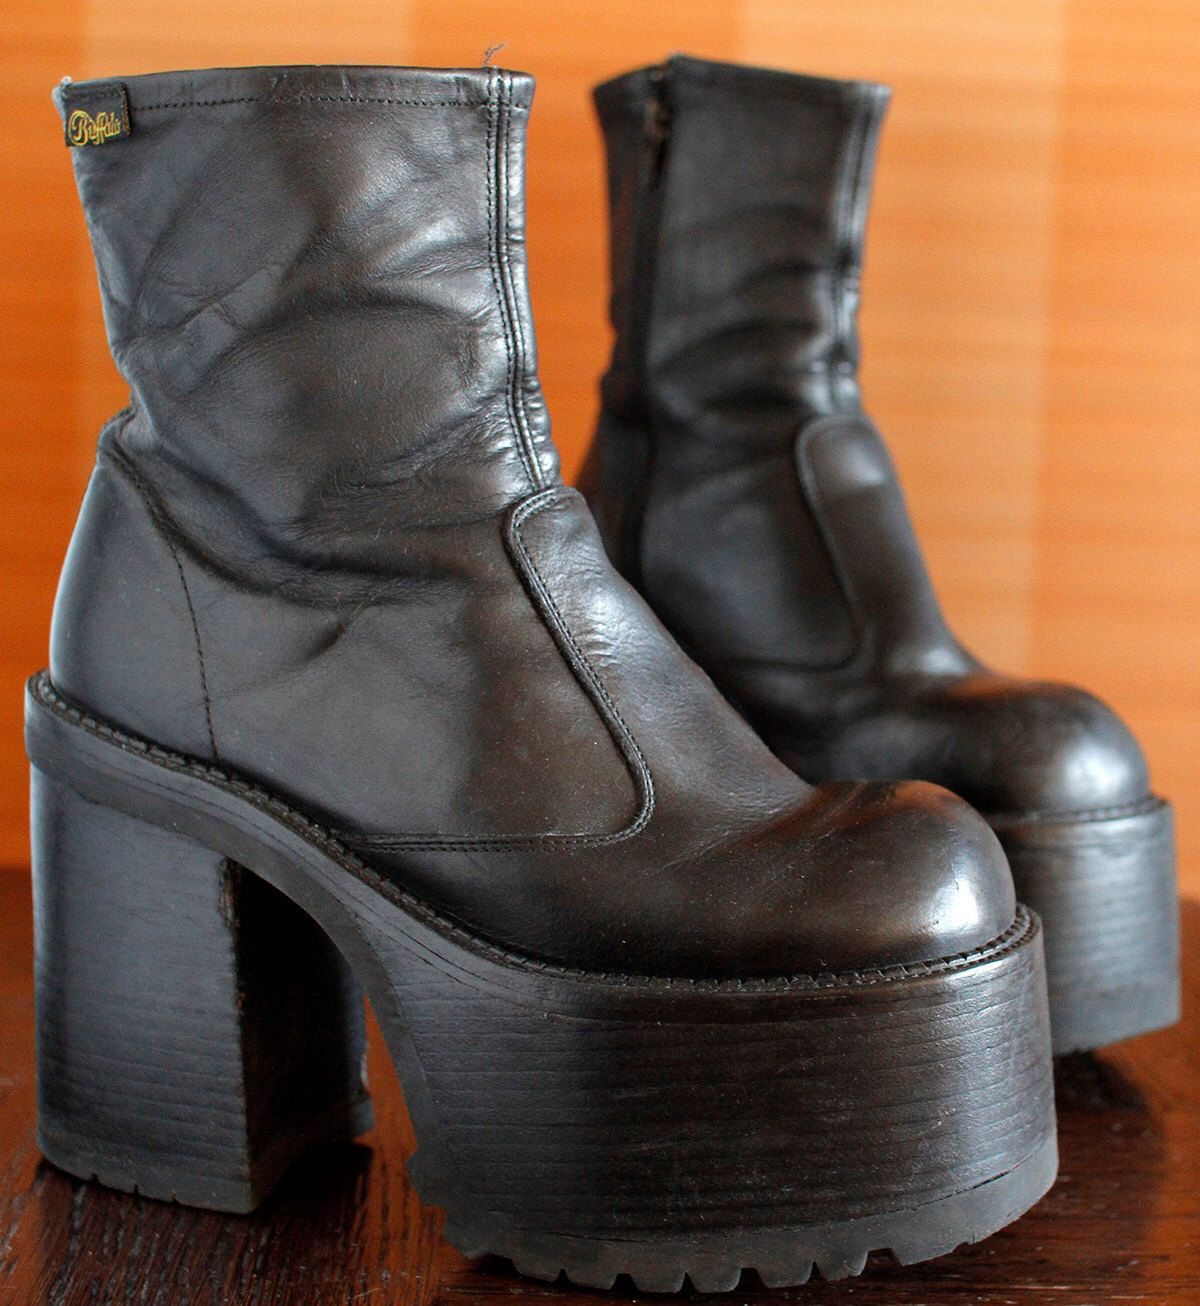 BUFFALO black platform boots 90's Club Kid by VintagePlatformDeal on Etsy  https://www